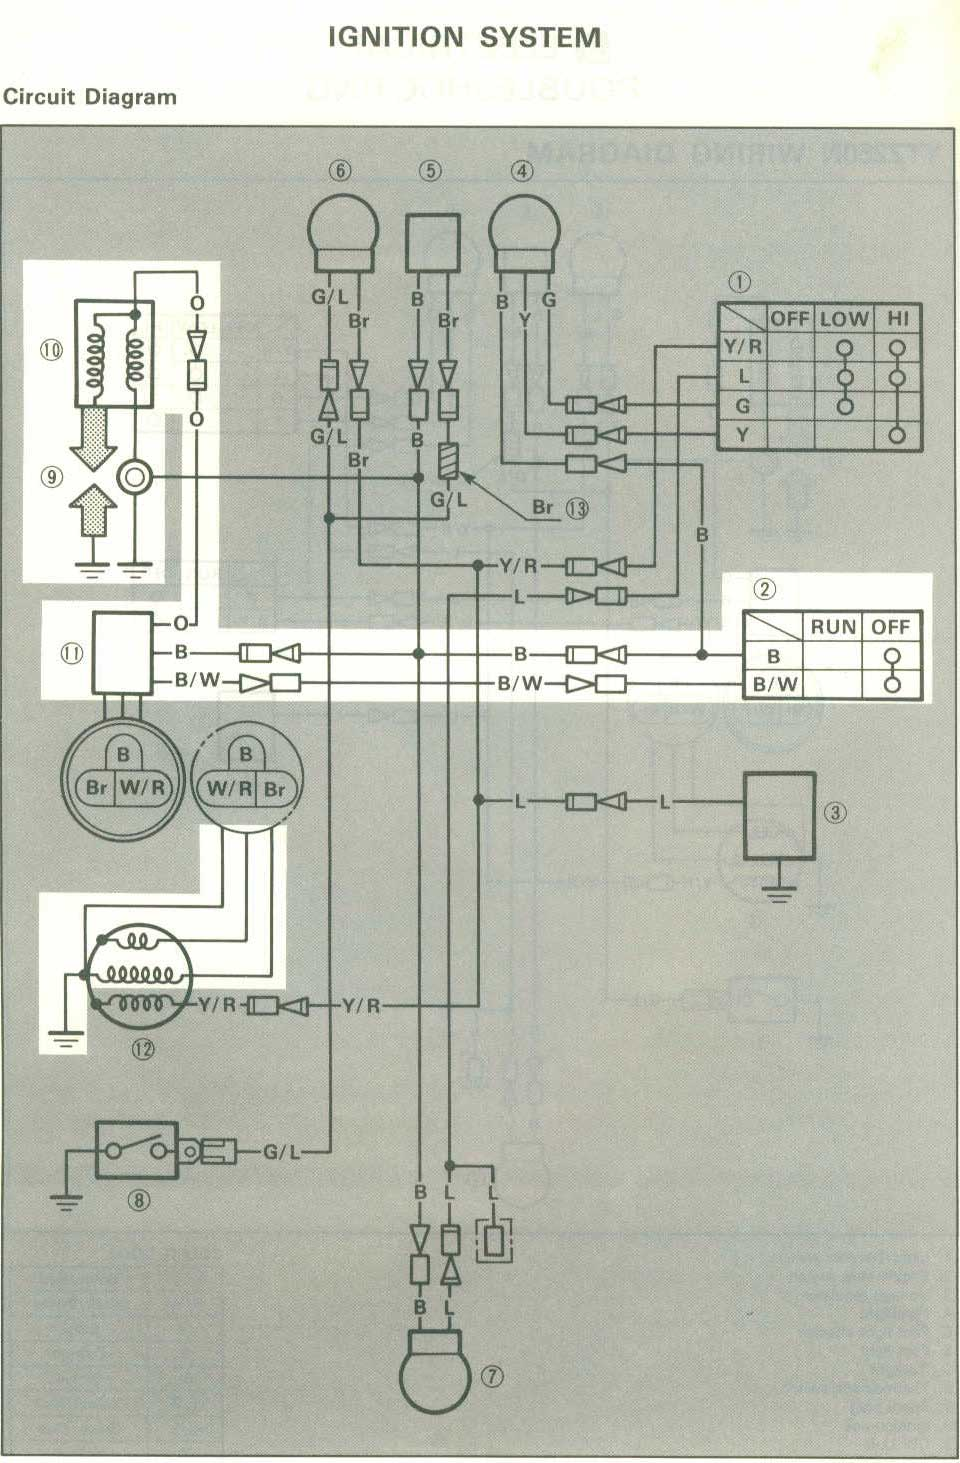 3 wheeler world tech help yamaha wiring diagrams yamaha super motard tri z ytz250n 1985